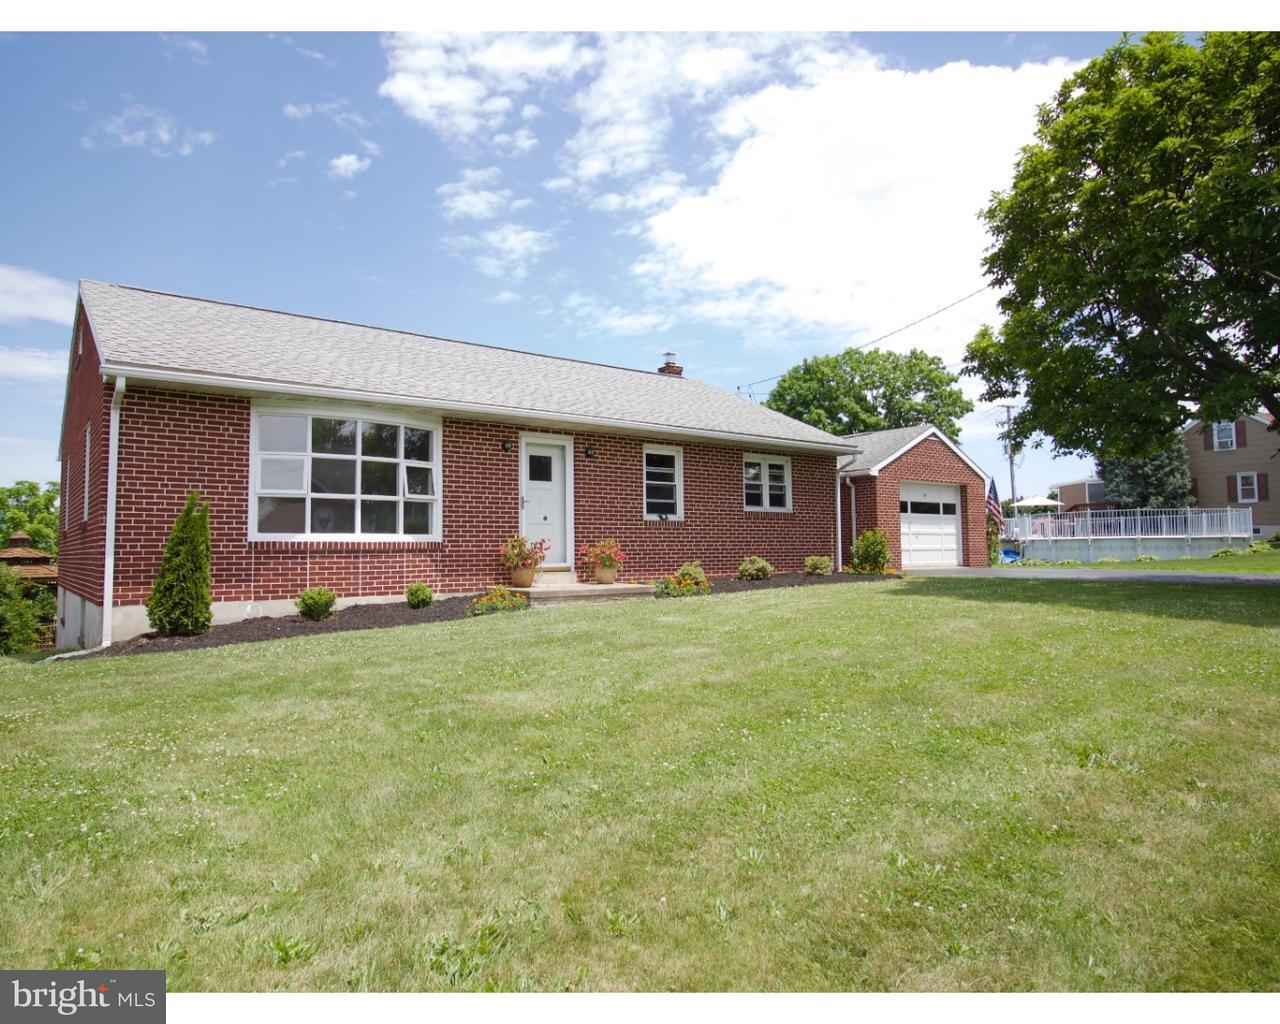 39 HENRY AVE, BOYERTOWN - Listed at $232,549, BOYERTOWN